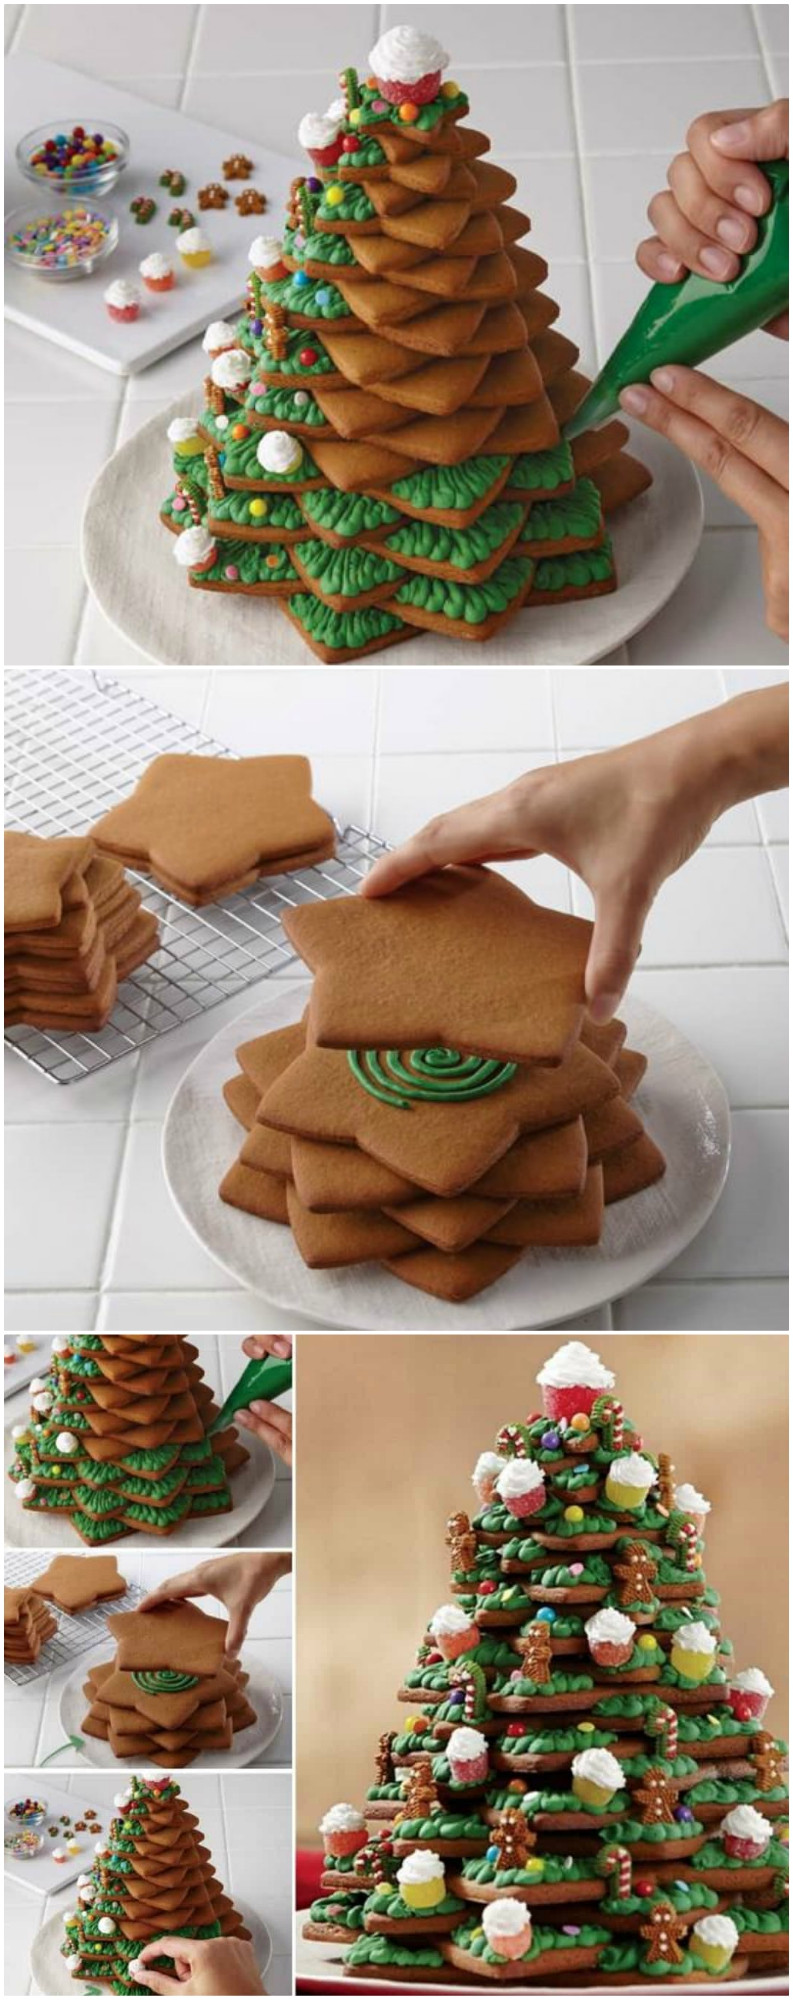 3D Christmas Tree Cookies  3D Cookie Christmas Tree Recipe With Video Tutorial